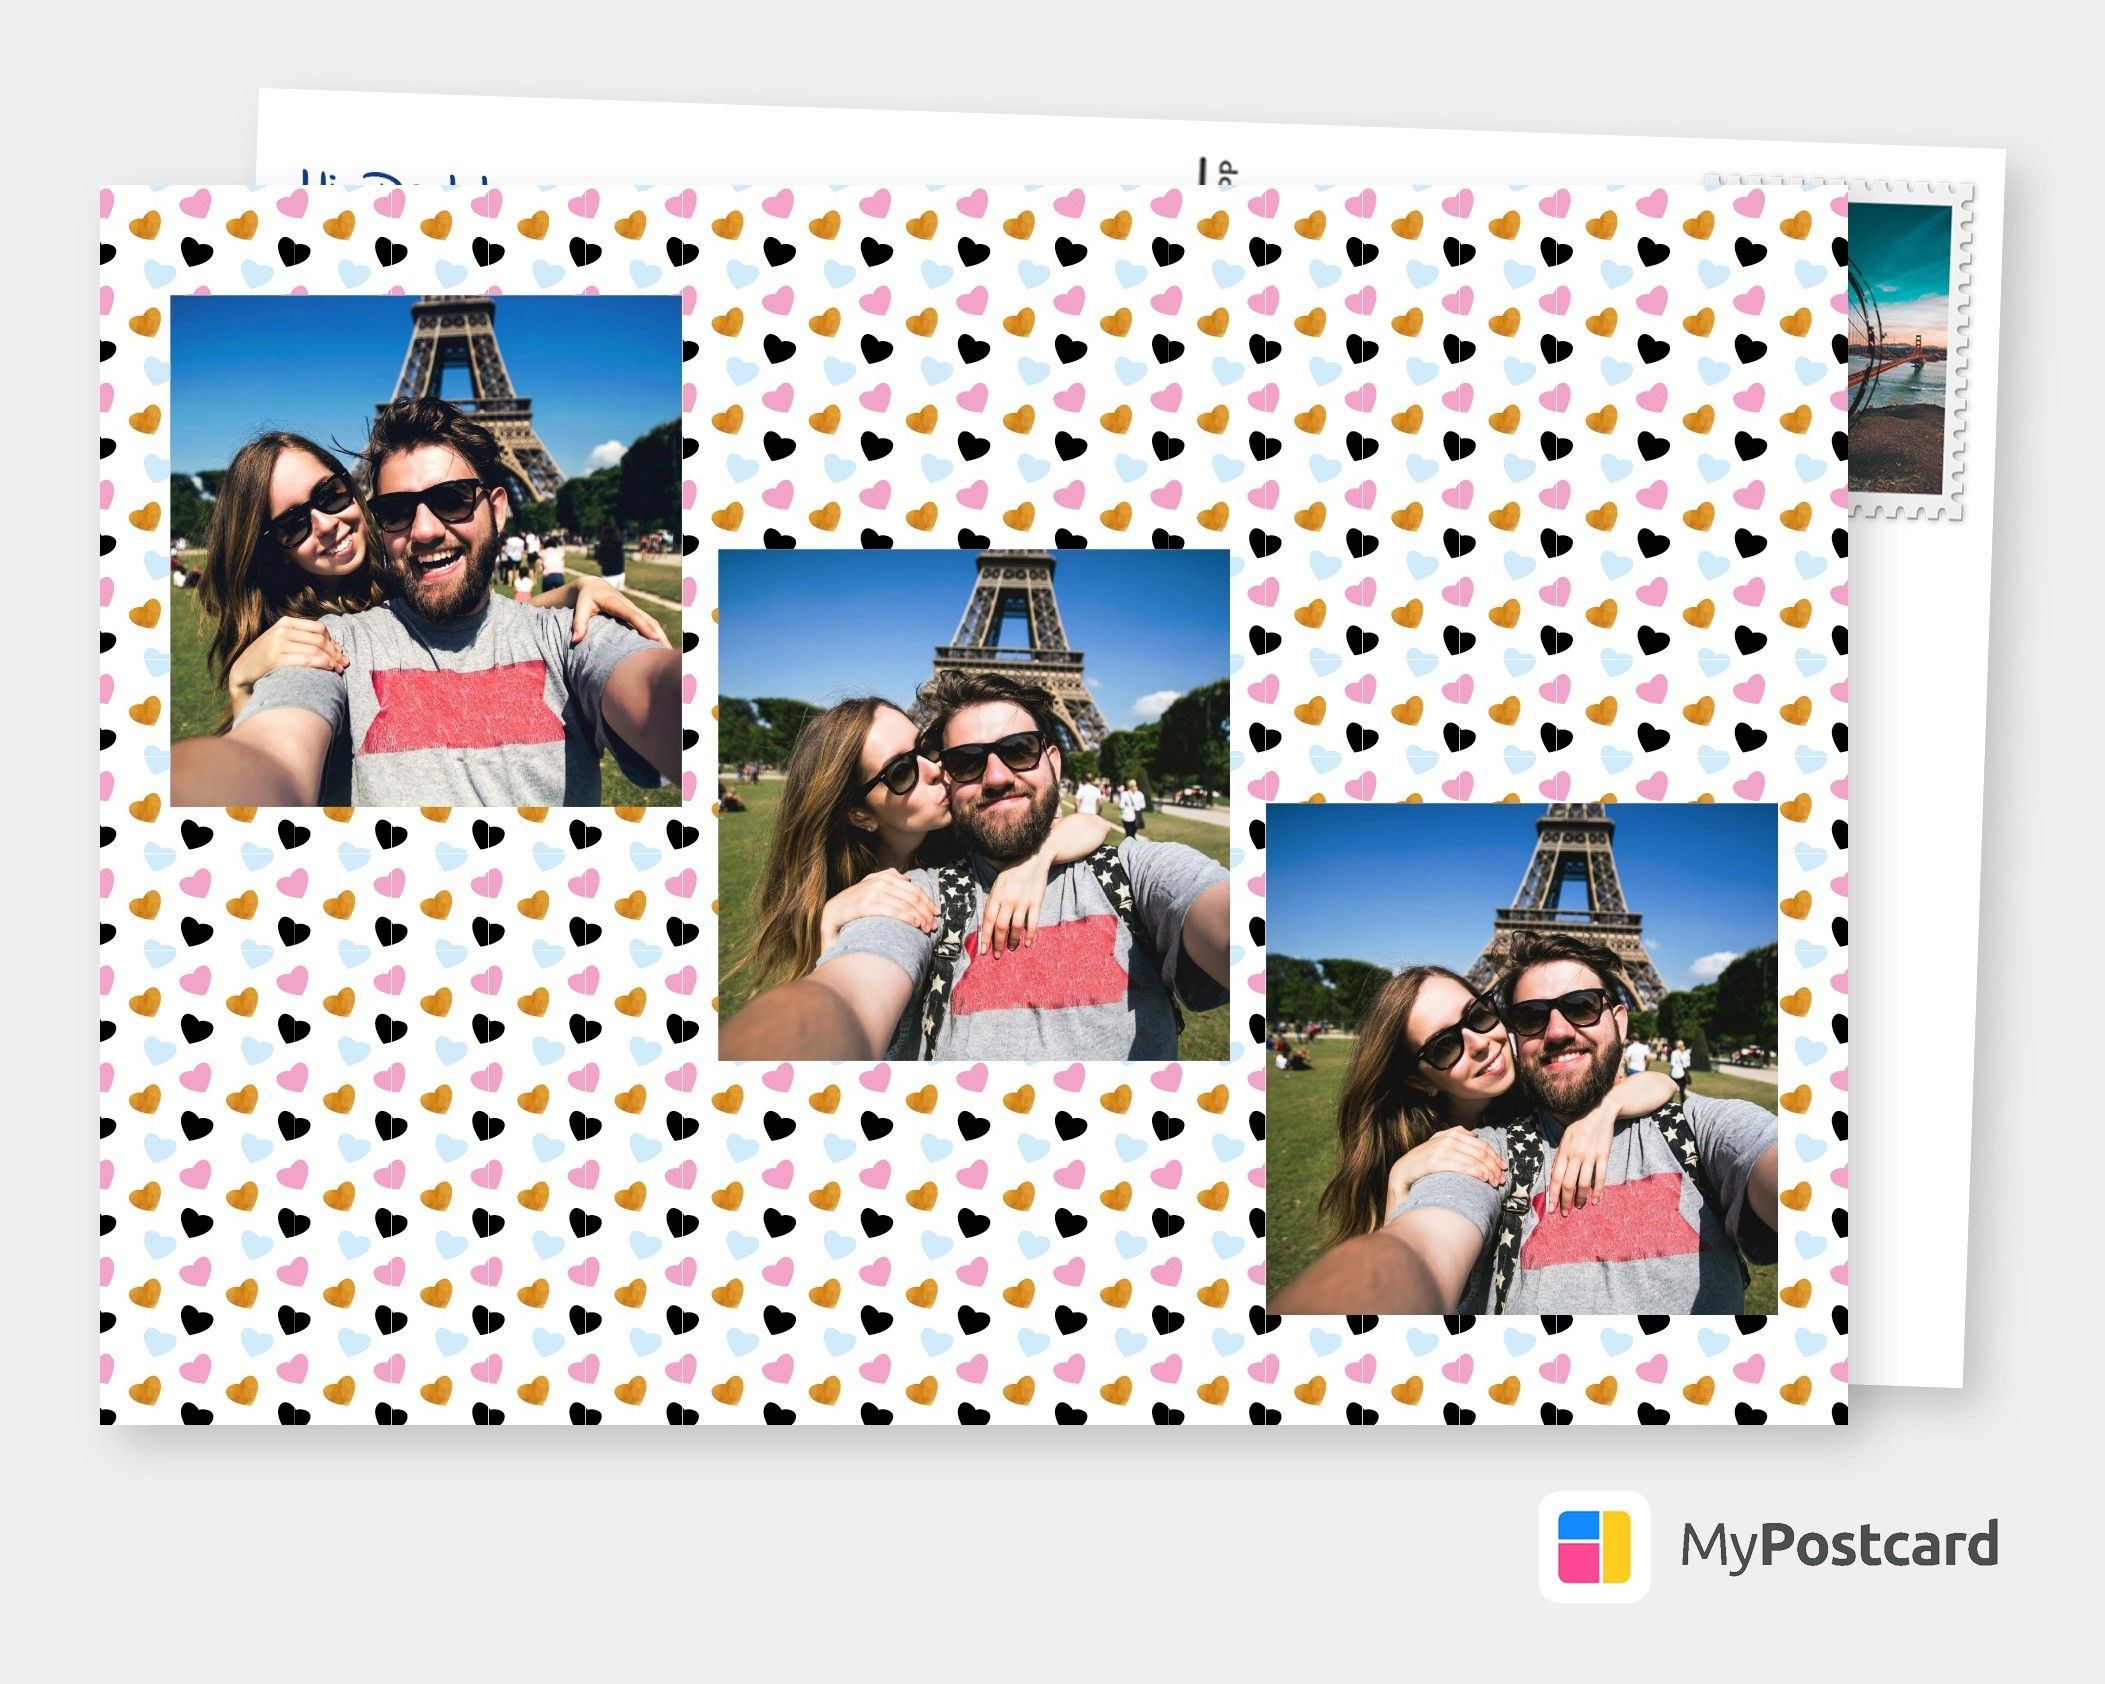 Free Printable I Love You Photo Cards Online Customized Photo Cards Printed Mailed For You International Online Or With Our Free Postcard App Postcard Online Greeting